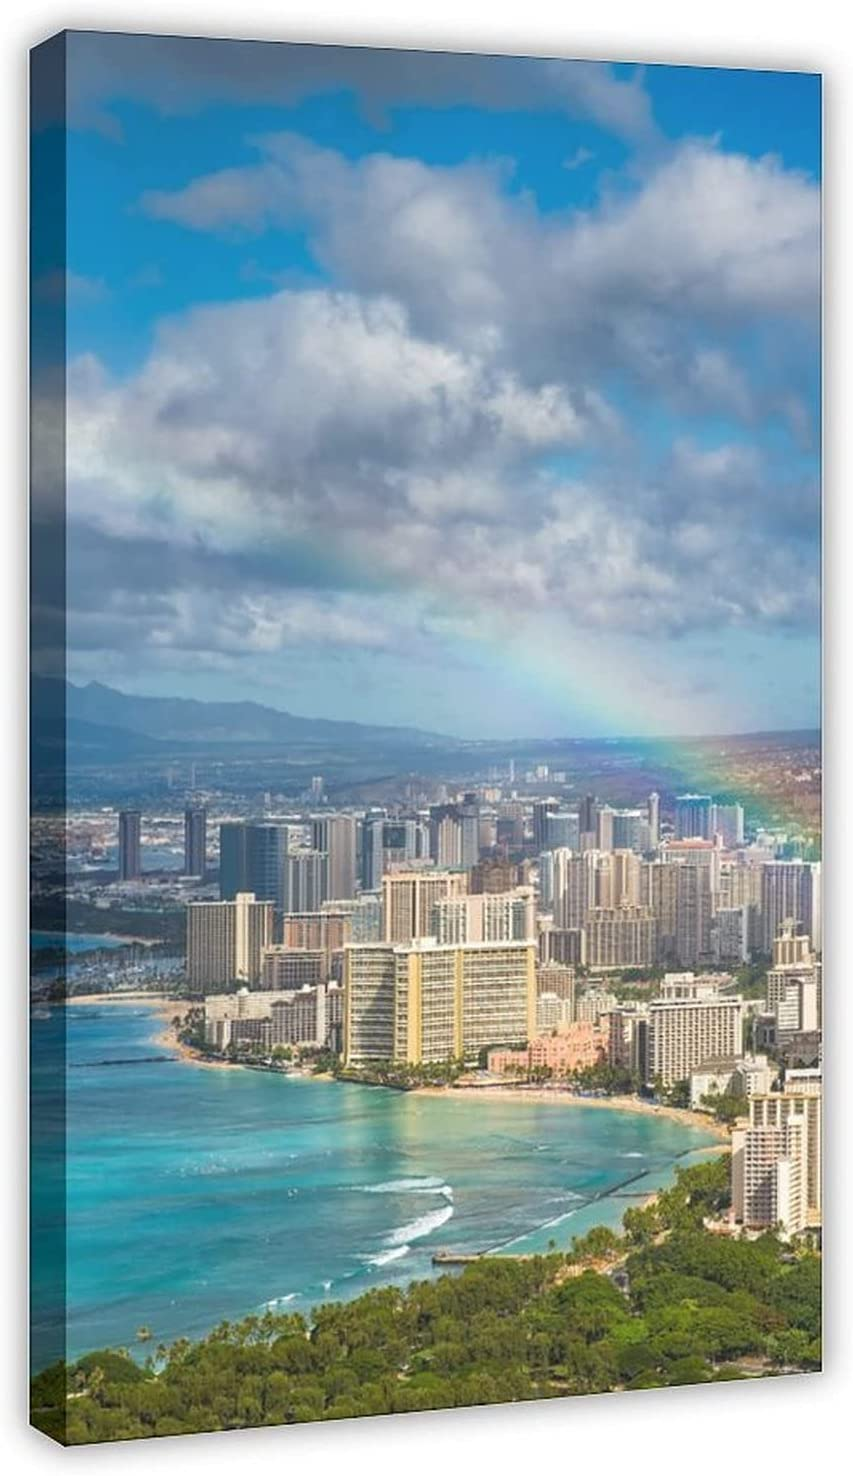 The Beautiful Landscape of Hawaii For Poster Seascape W Vertical Luxury New life goods